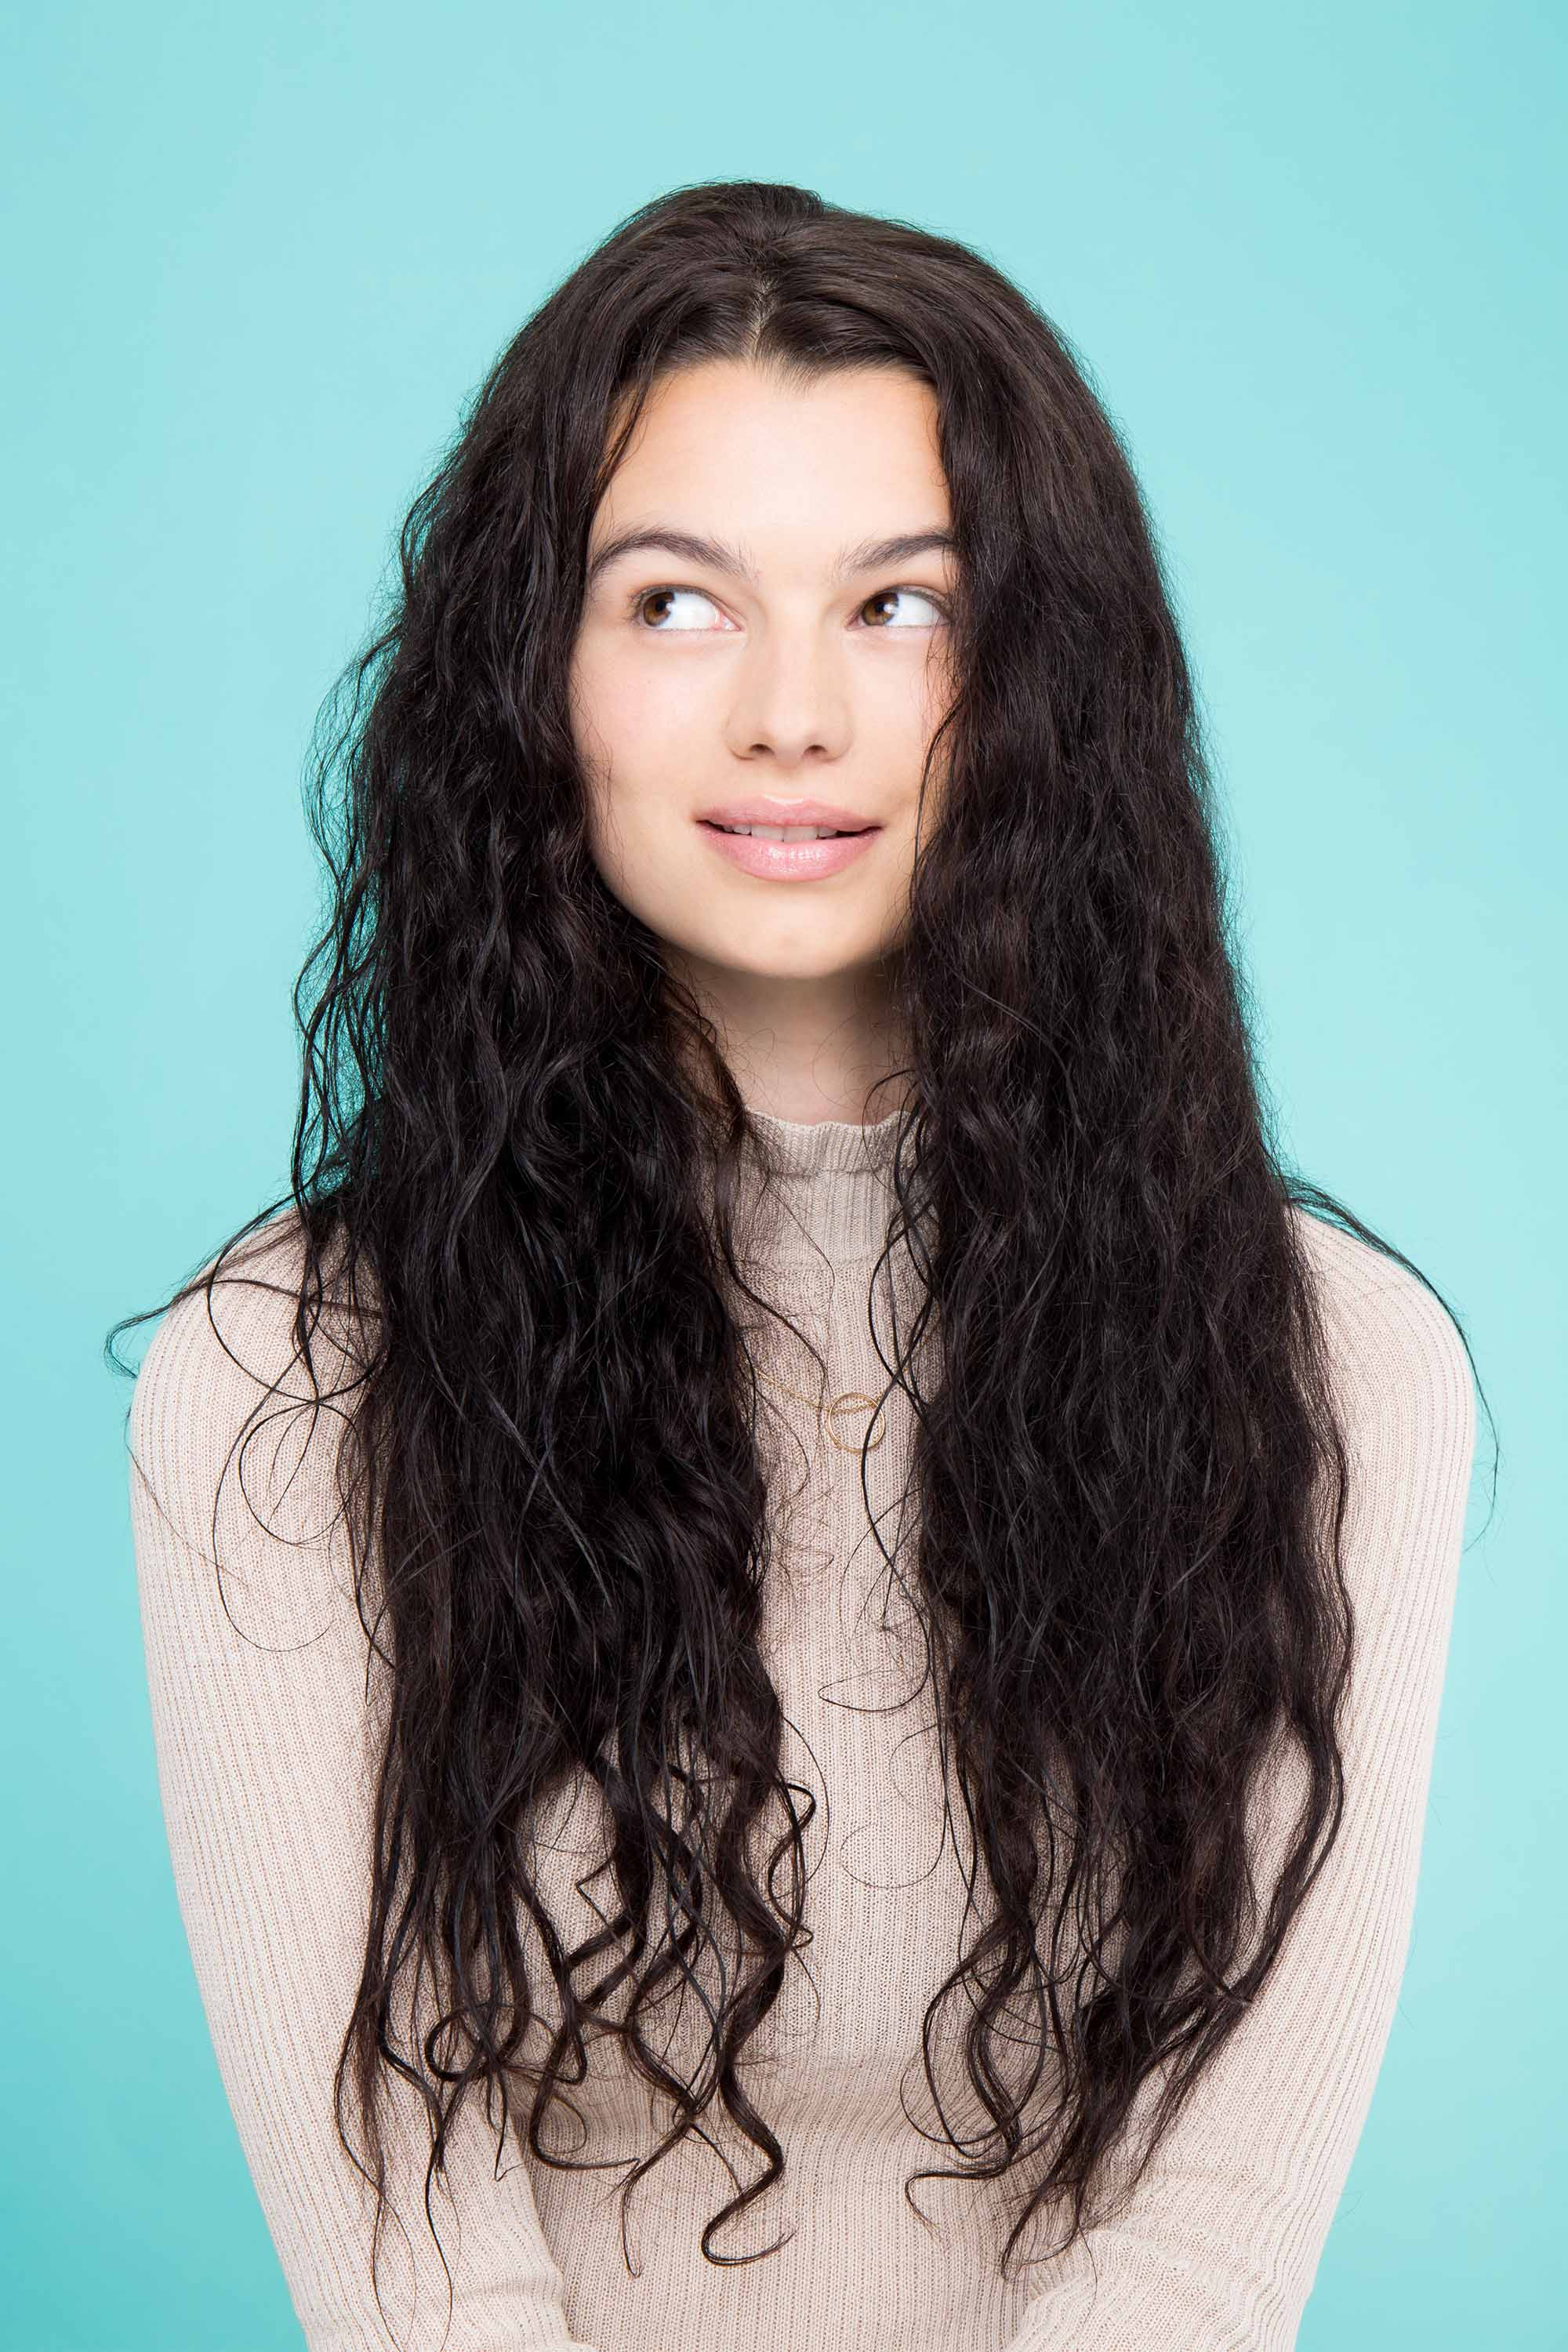 Styling mousse: All Things Hair - IMAGE - long brown curly hair mousse